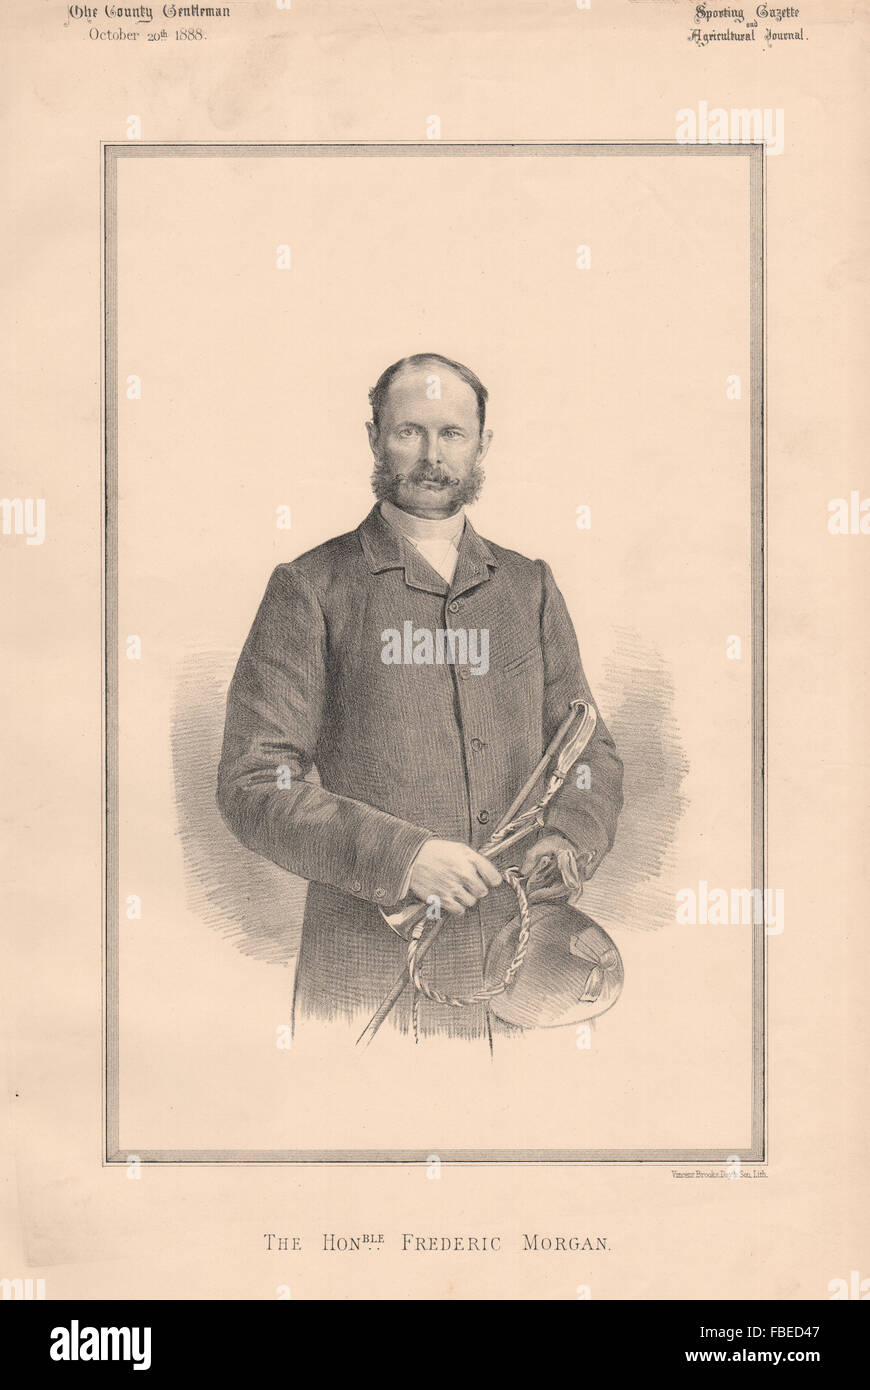 L'Honorable Frédéric Morgan, antique print 1888 Photo Stock